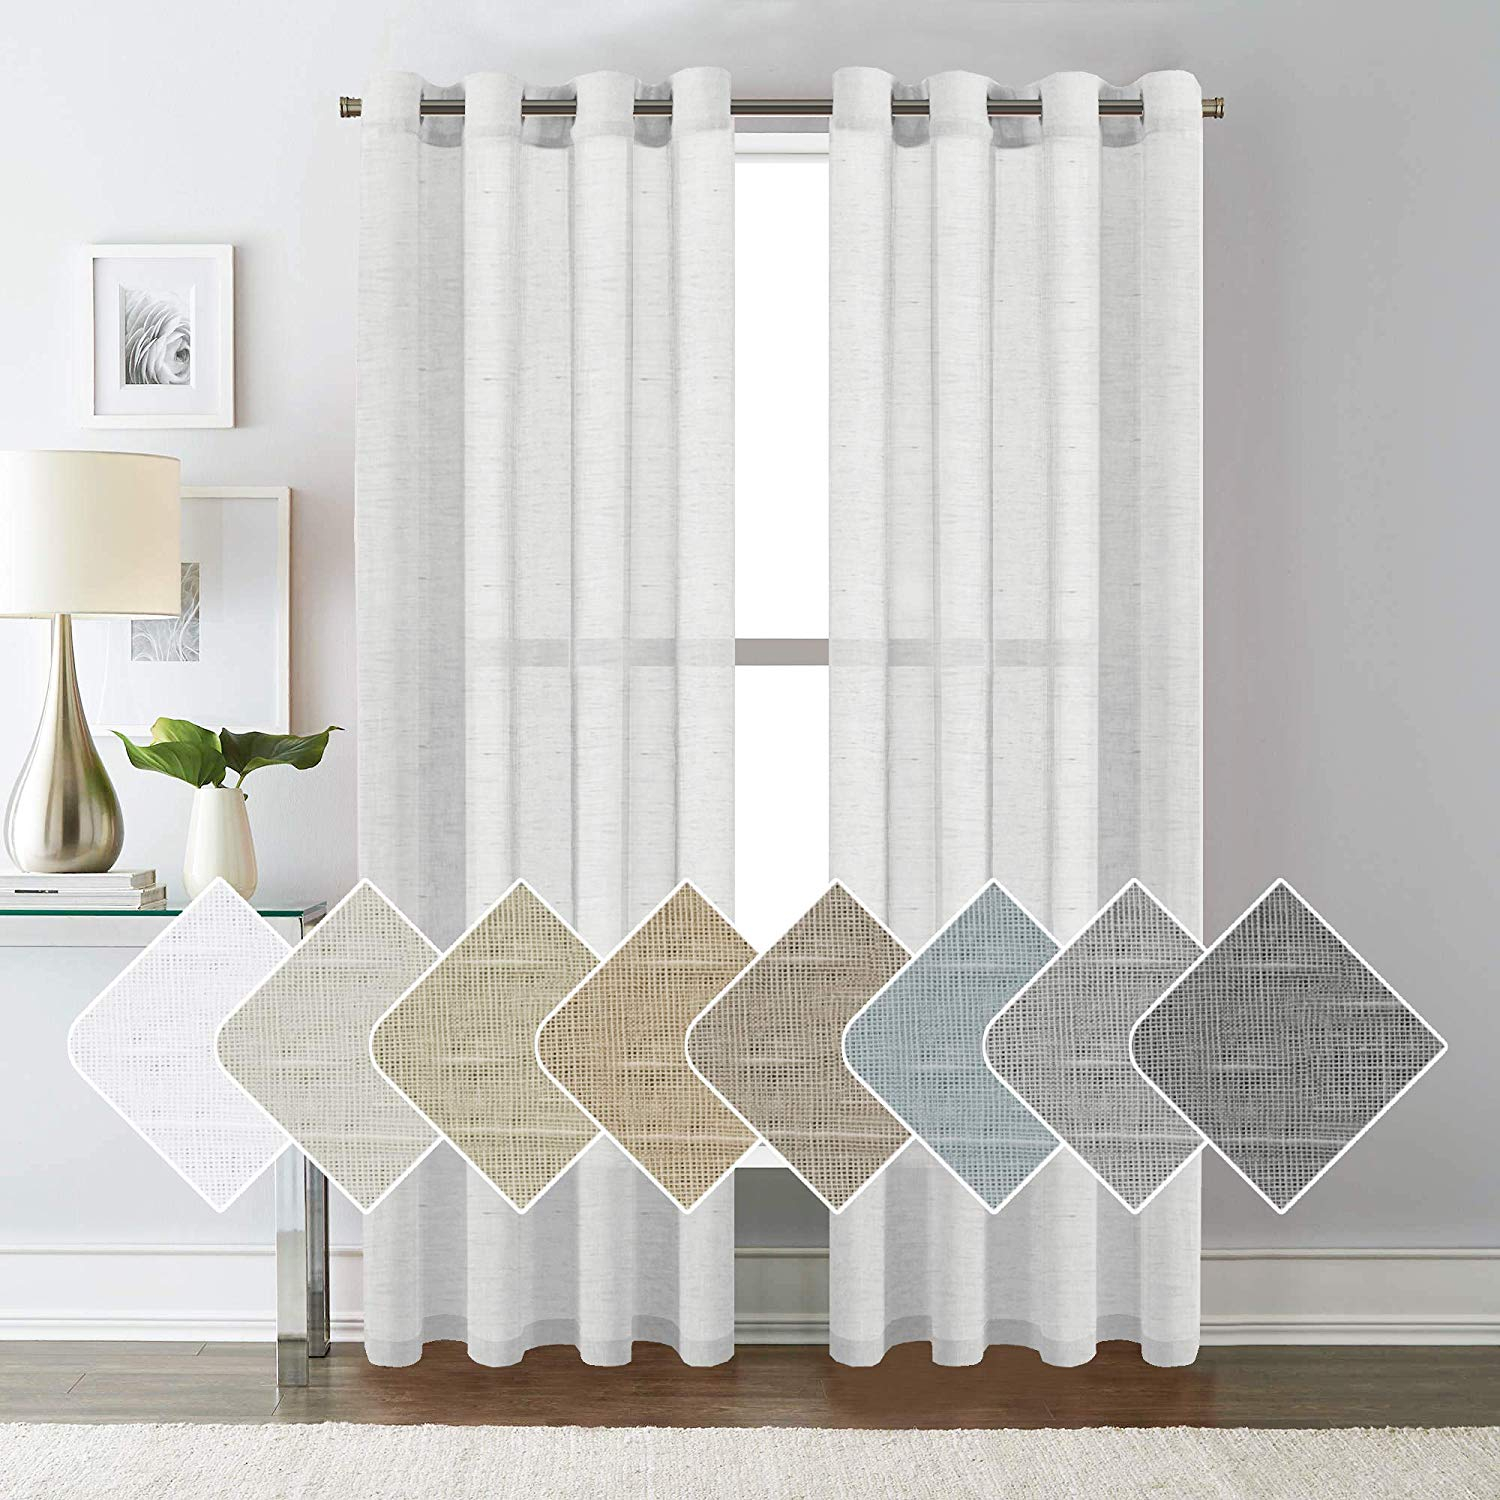 Details about Home Bedroom 52 x 84 Premium Luxury 2 Panel Window Sheer  Curtain Set, White